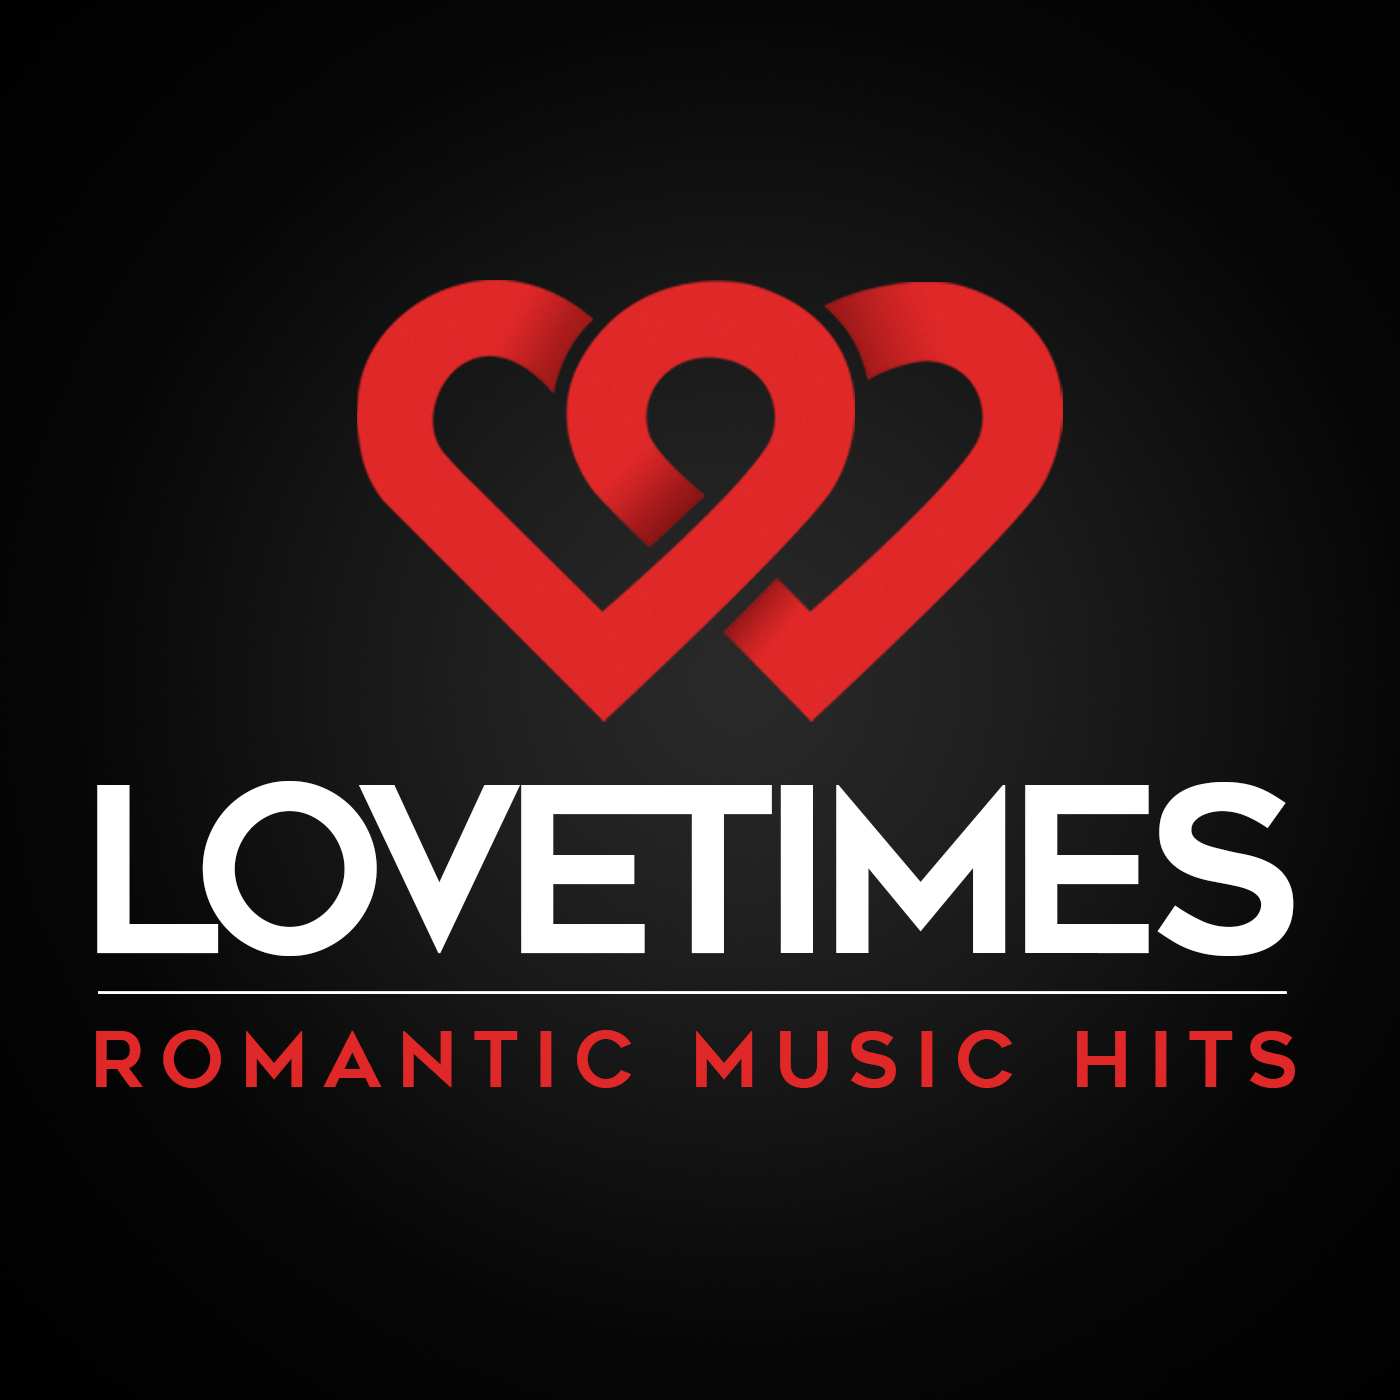 LOVETIMES | Romantic Music Hits (48 AAC)